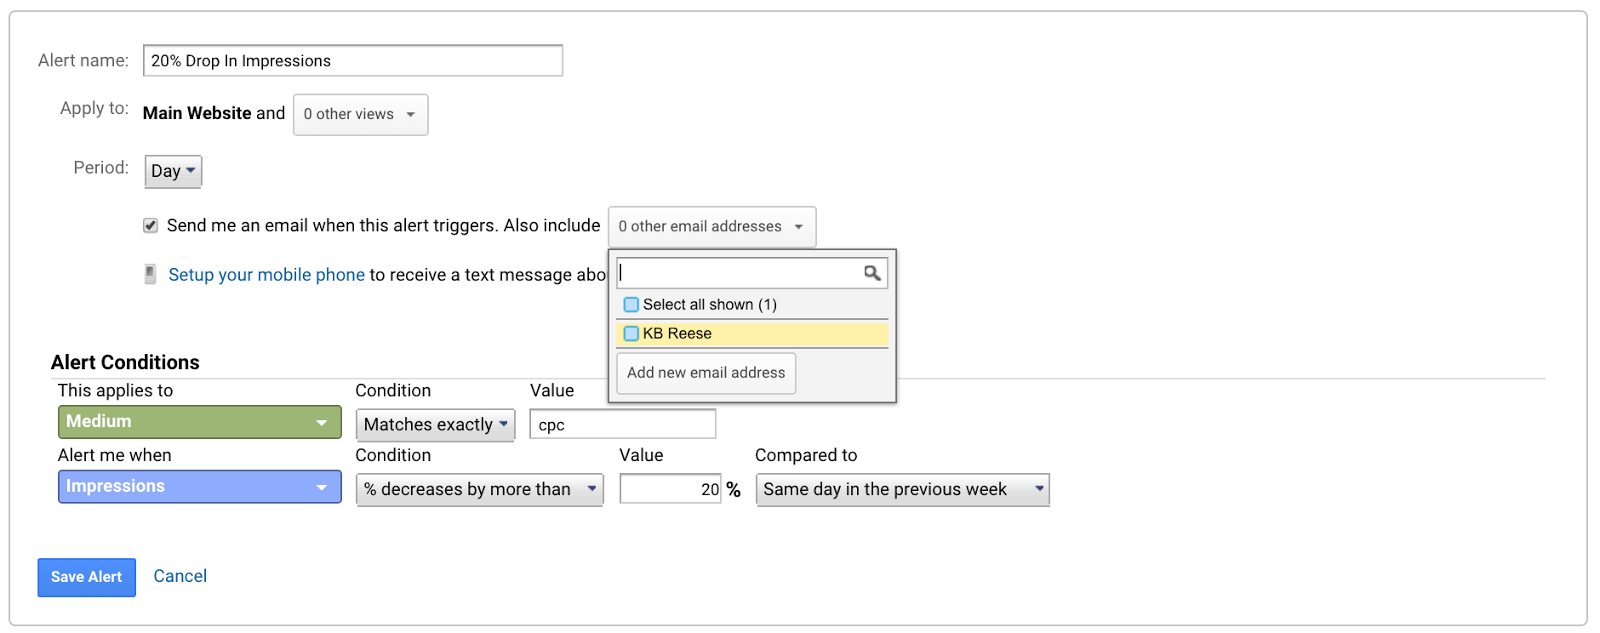 You can even have Google Analytics text you. But you can't text back. :(